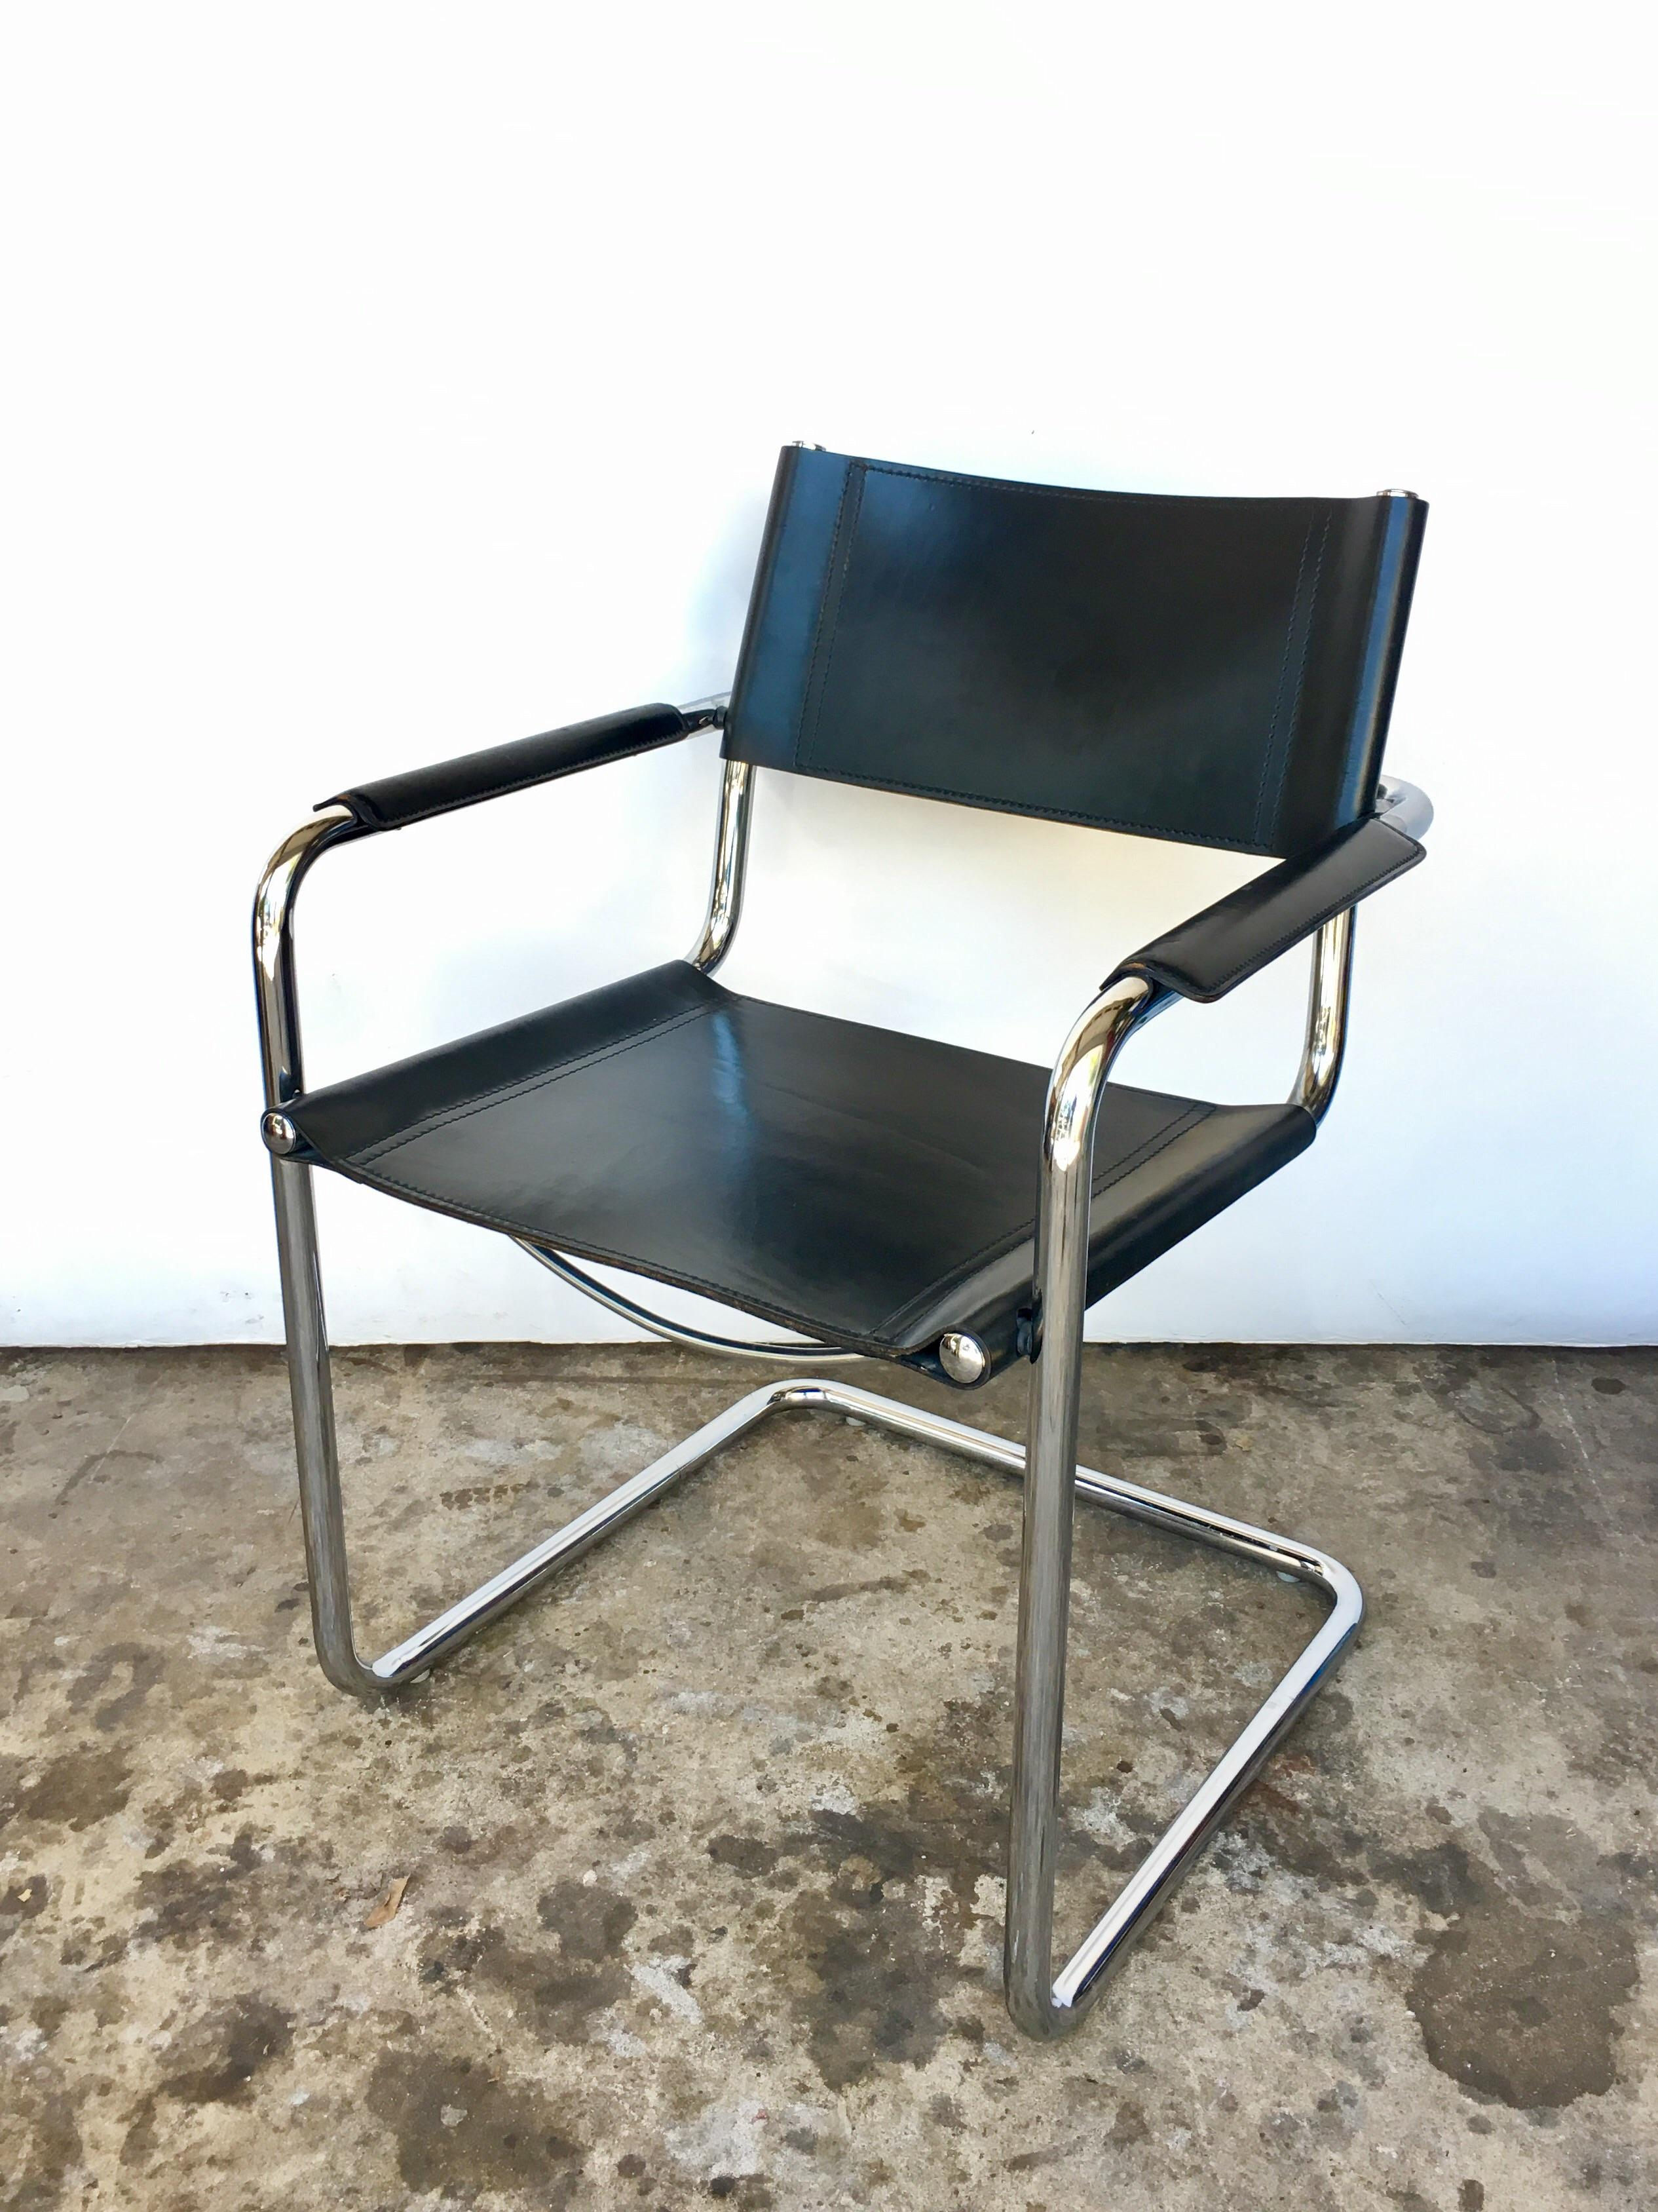 Ordinaire Matteograssi Matteograssi MG5 Dining Chairs   Set Of 6 For Sale   Image 4  Of 10